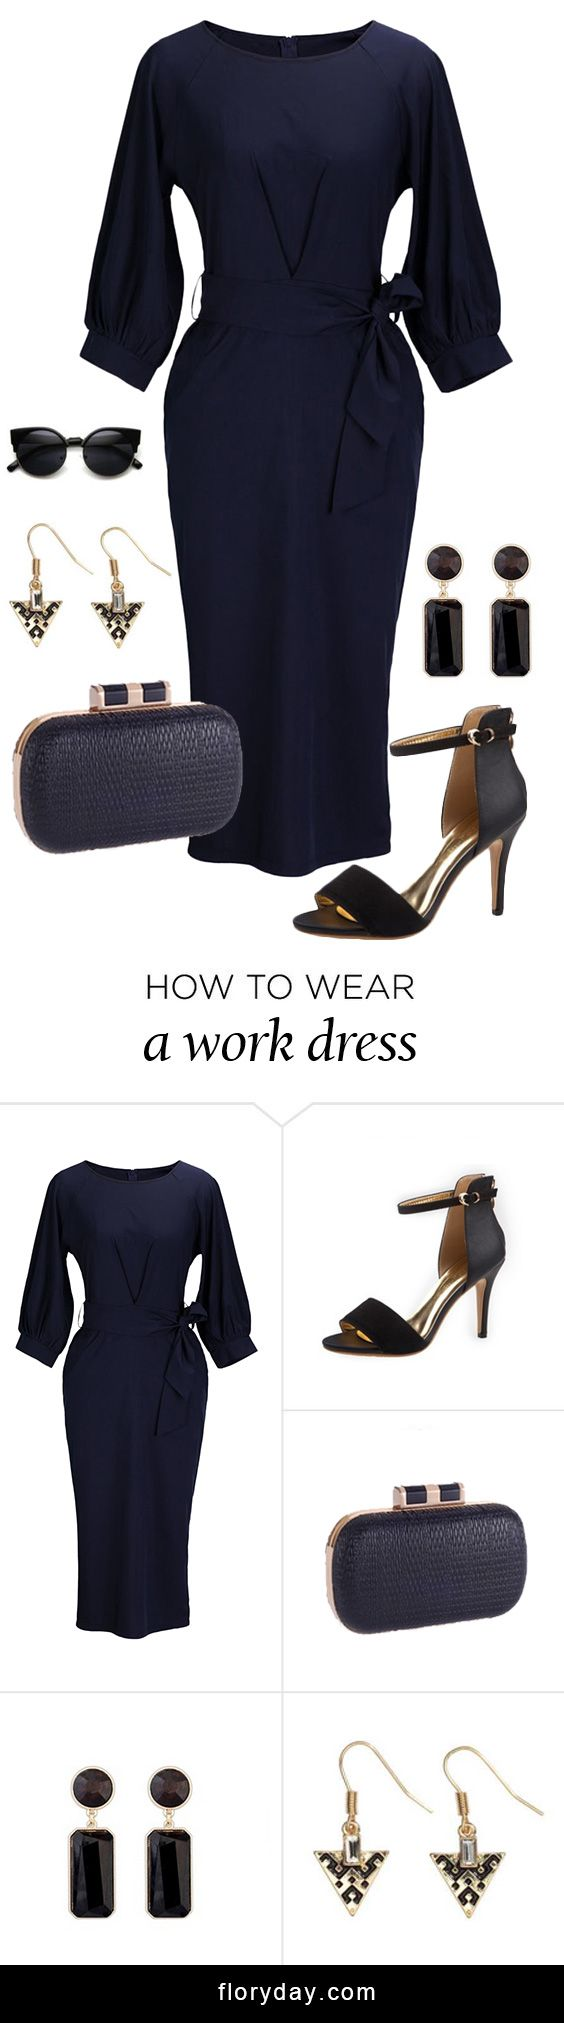 Looking for a special dress for work? This mid-calf elegant dress will never be wrong. Team it with high sandals for work wear that wows - the opportunities are endless with this wardrobe essential.View more at www.floryday.com.